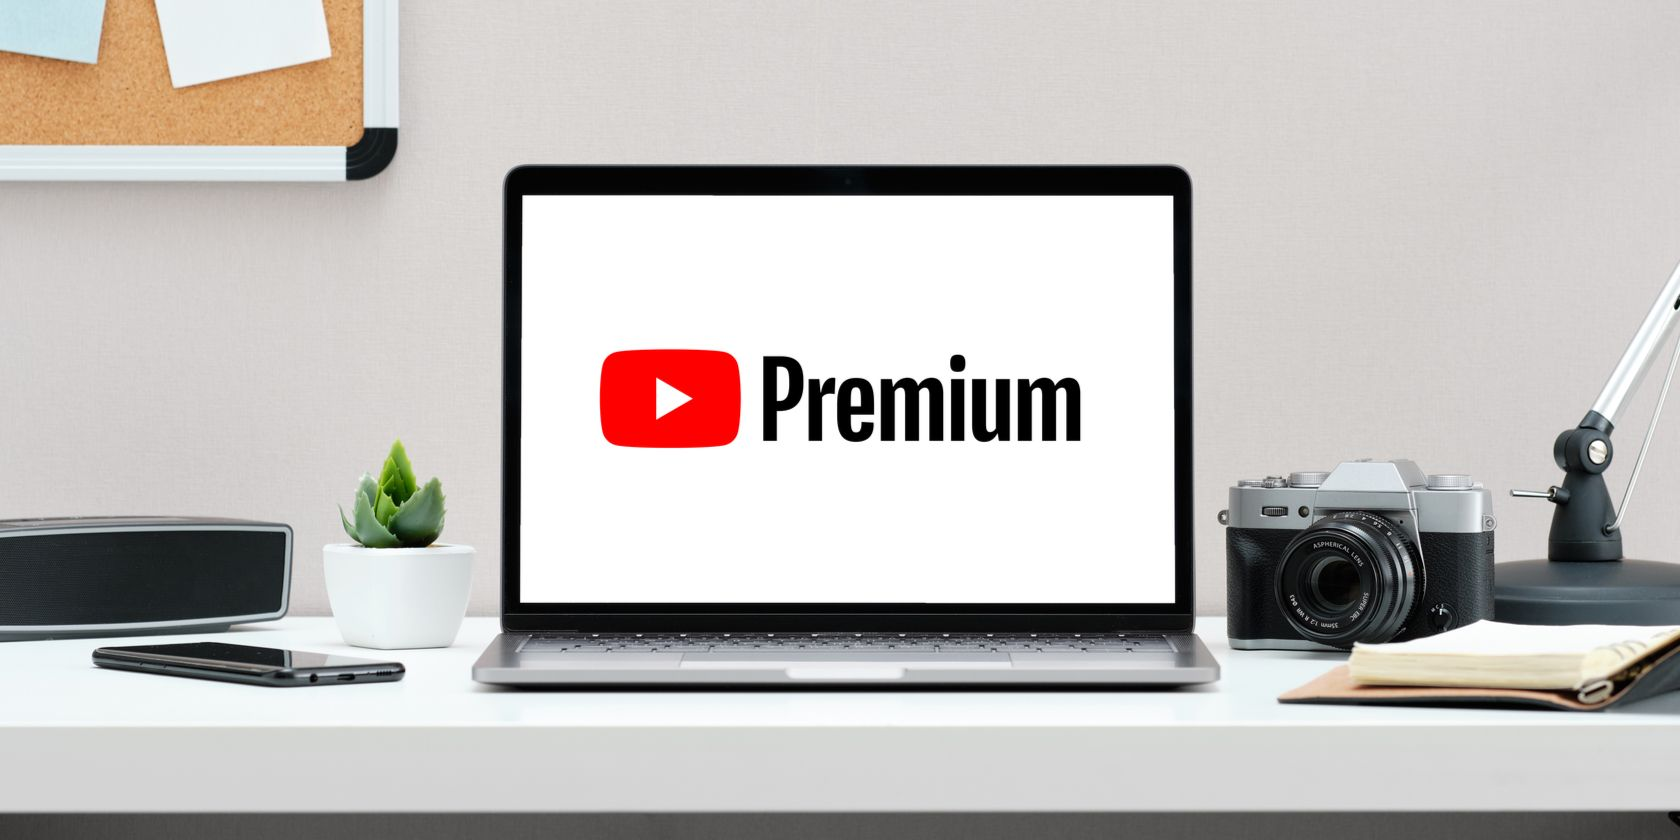 Is YouTube Premium Worth the Cost? 7 Things to Consider